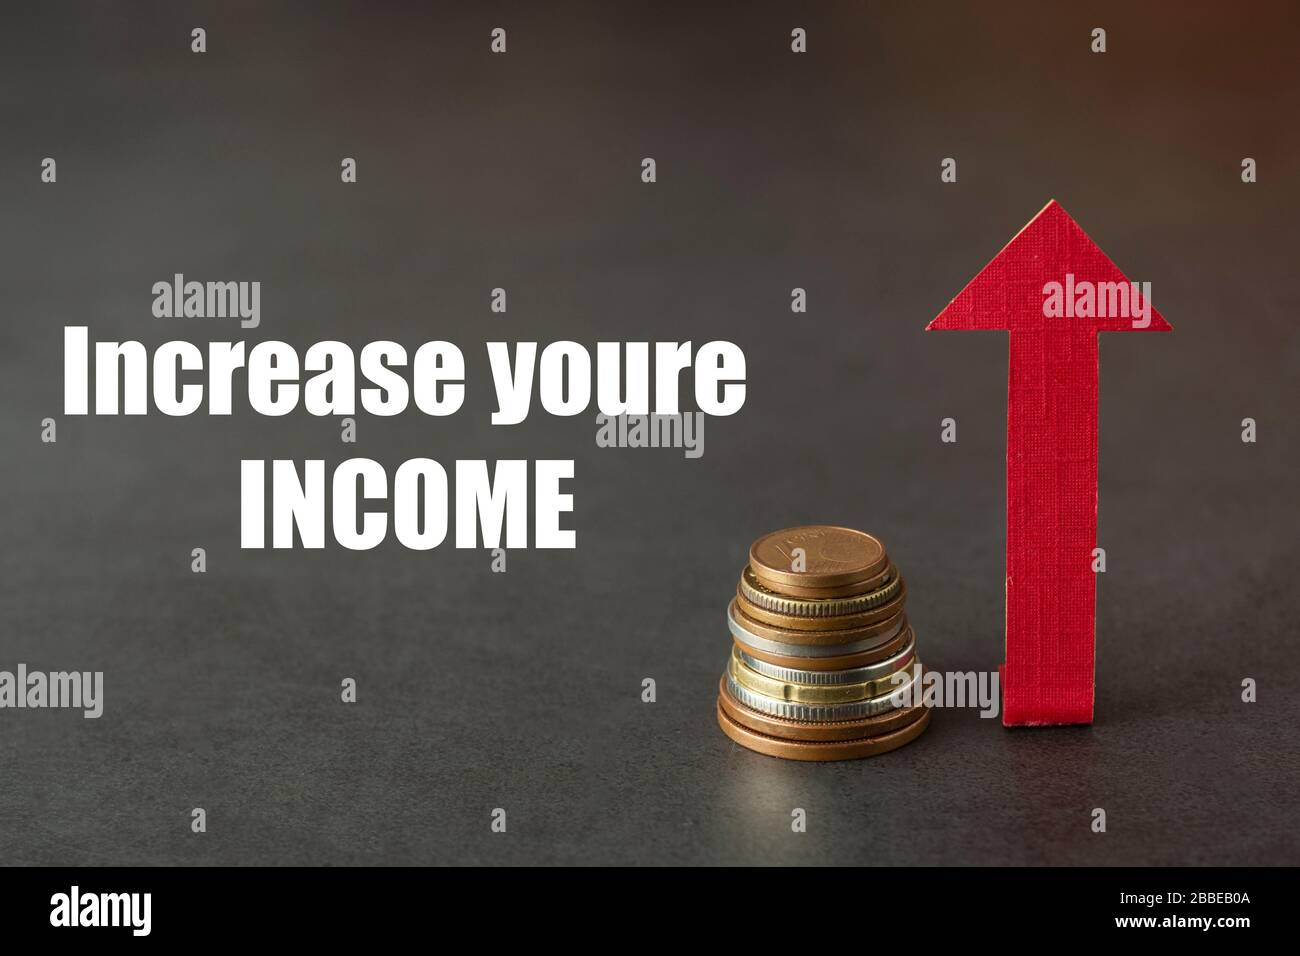 Increase your income. Money bag and up drawn chart. Increase of salary or income. Copy space, dark background. Stock Photo